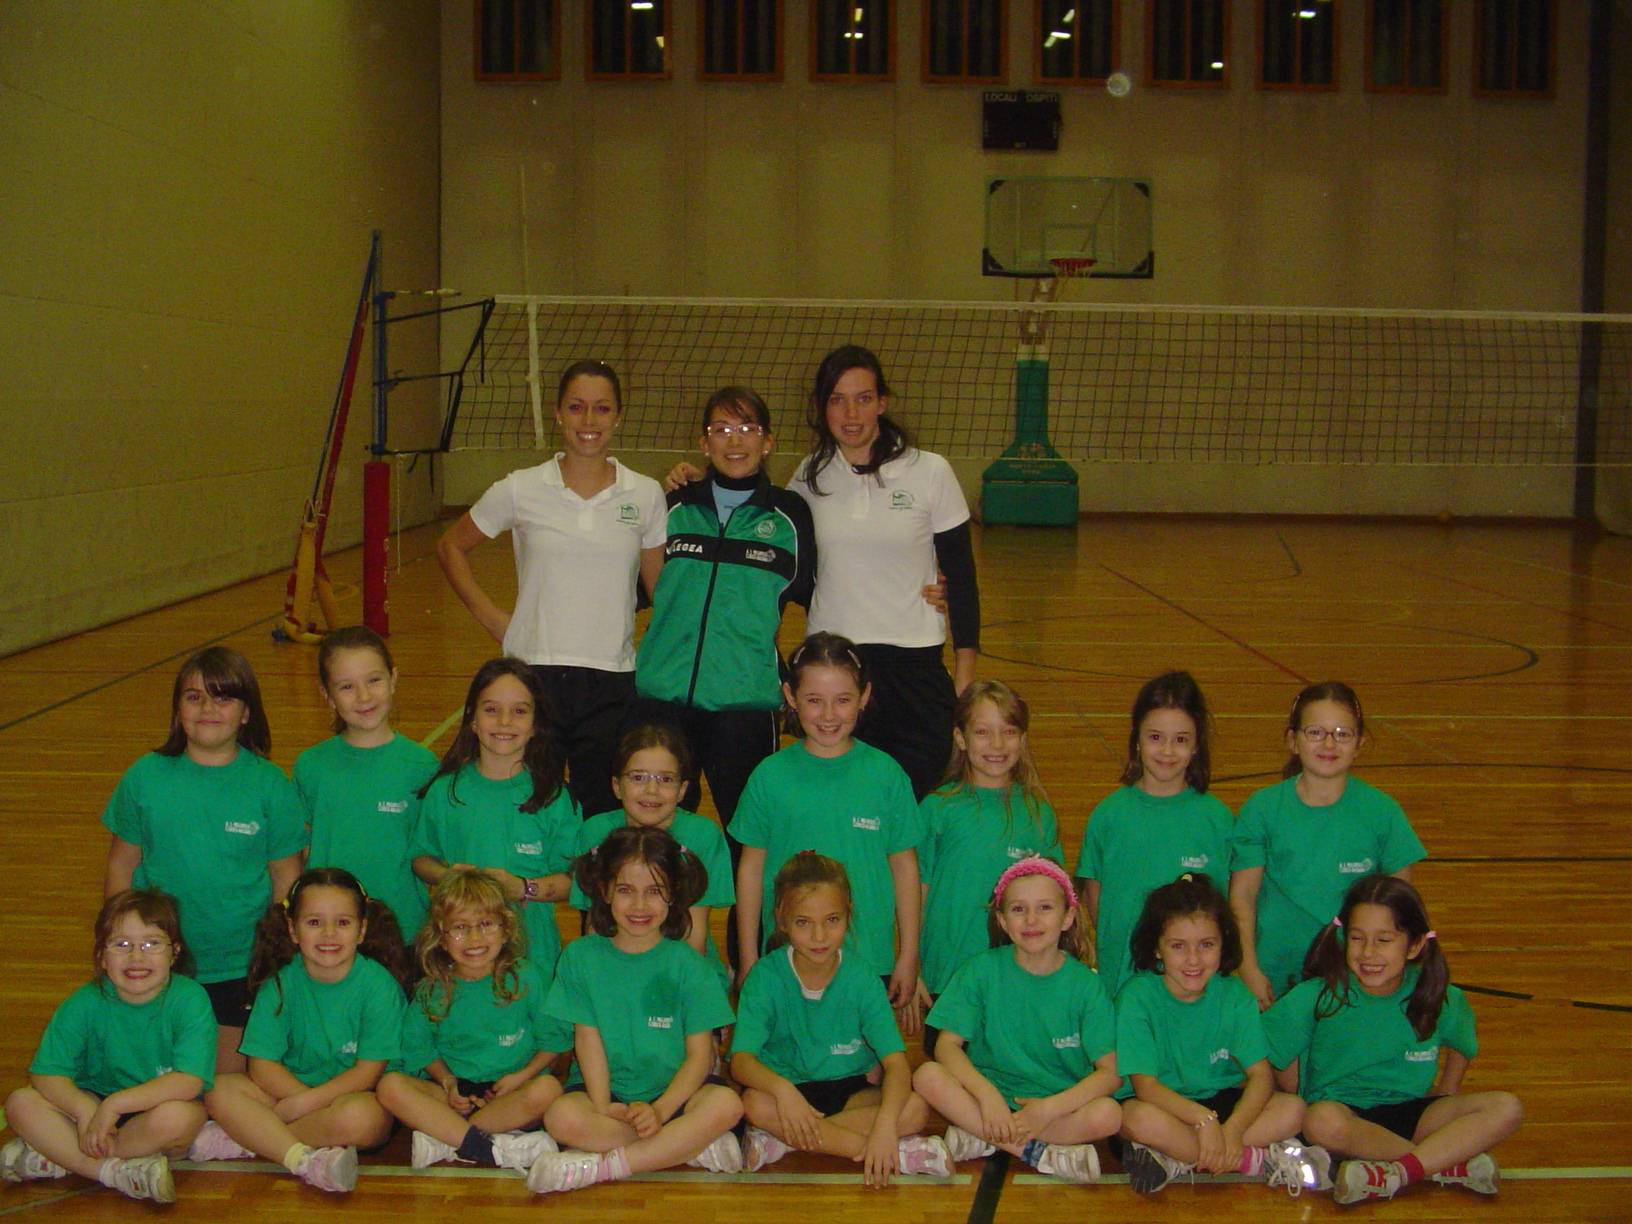 BABYVOLLEY 2007 / 2008